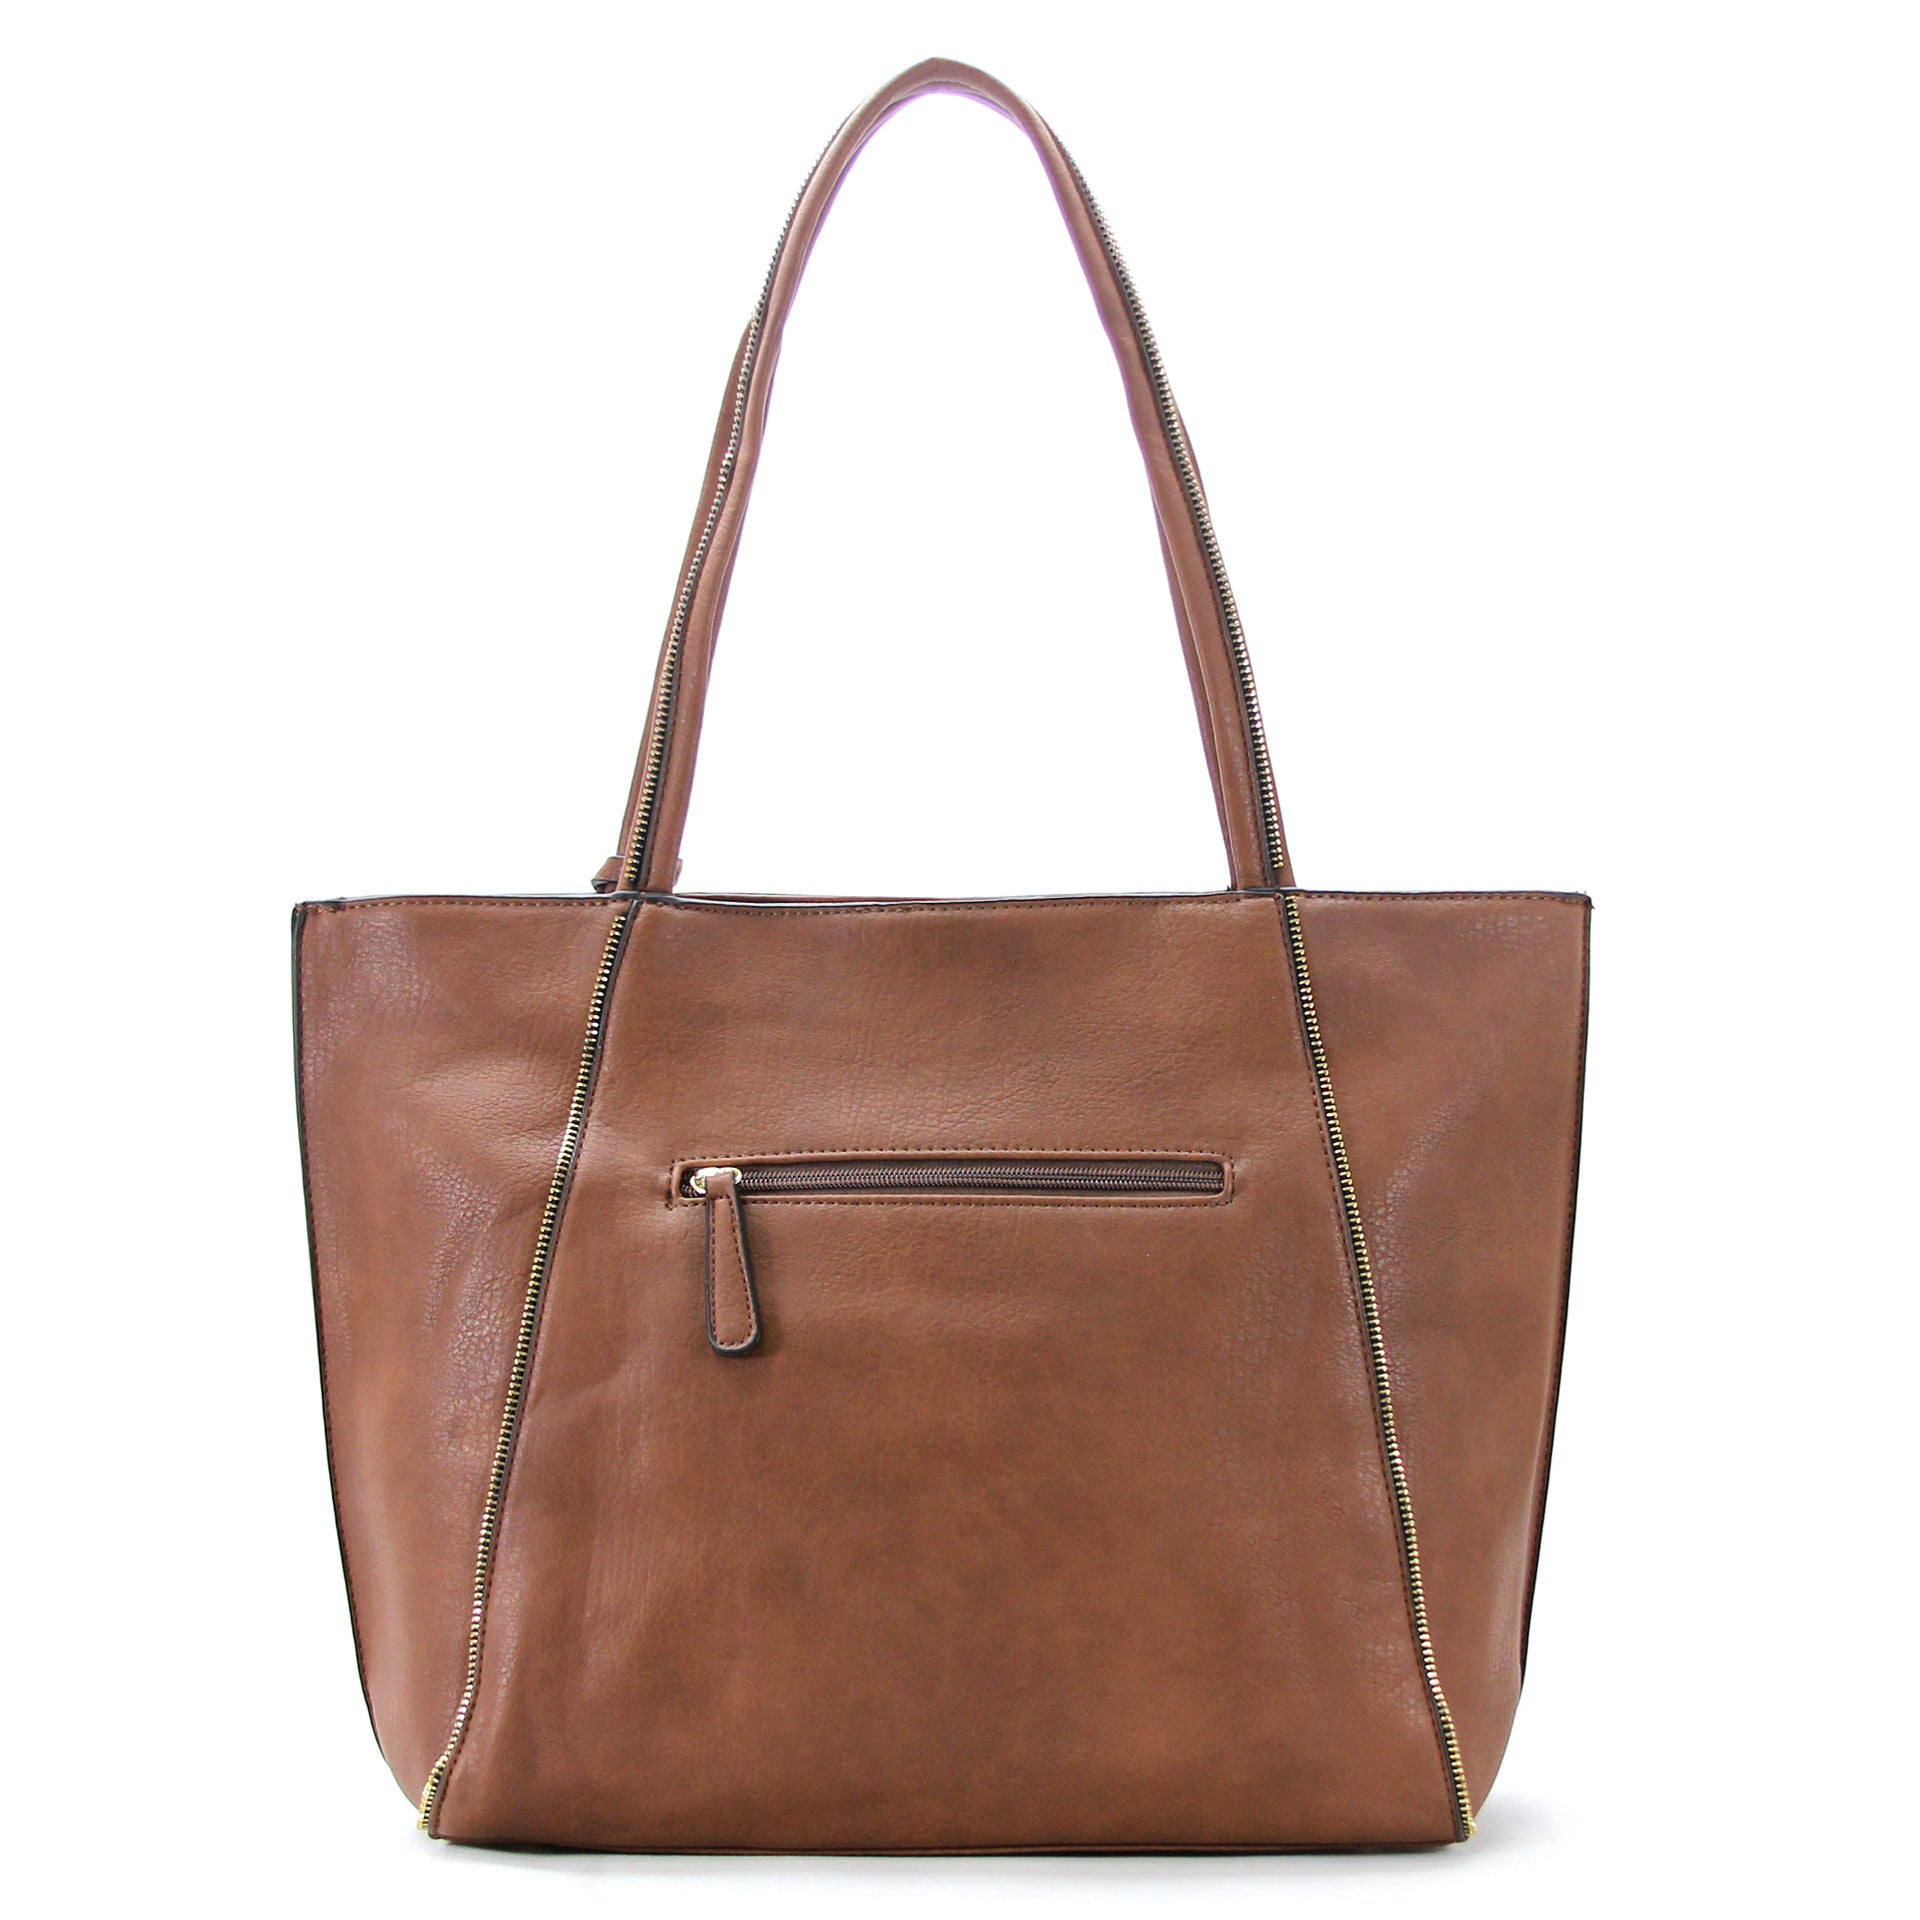 Robert Matthew Jordan Tote - Coffee - Robert Matthew Handbags and Fashion